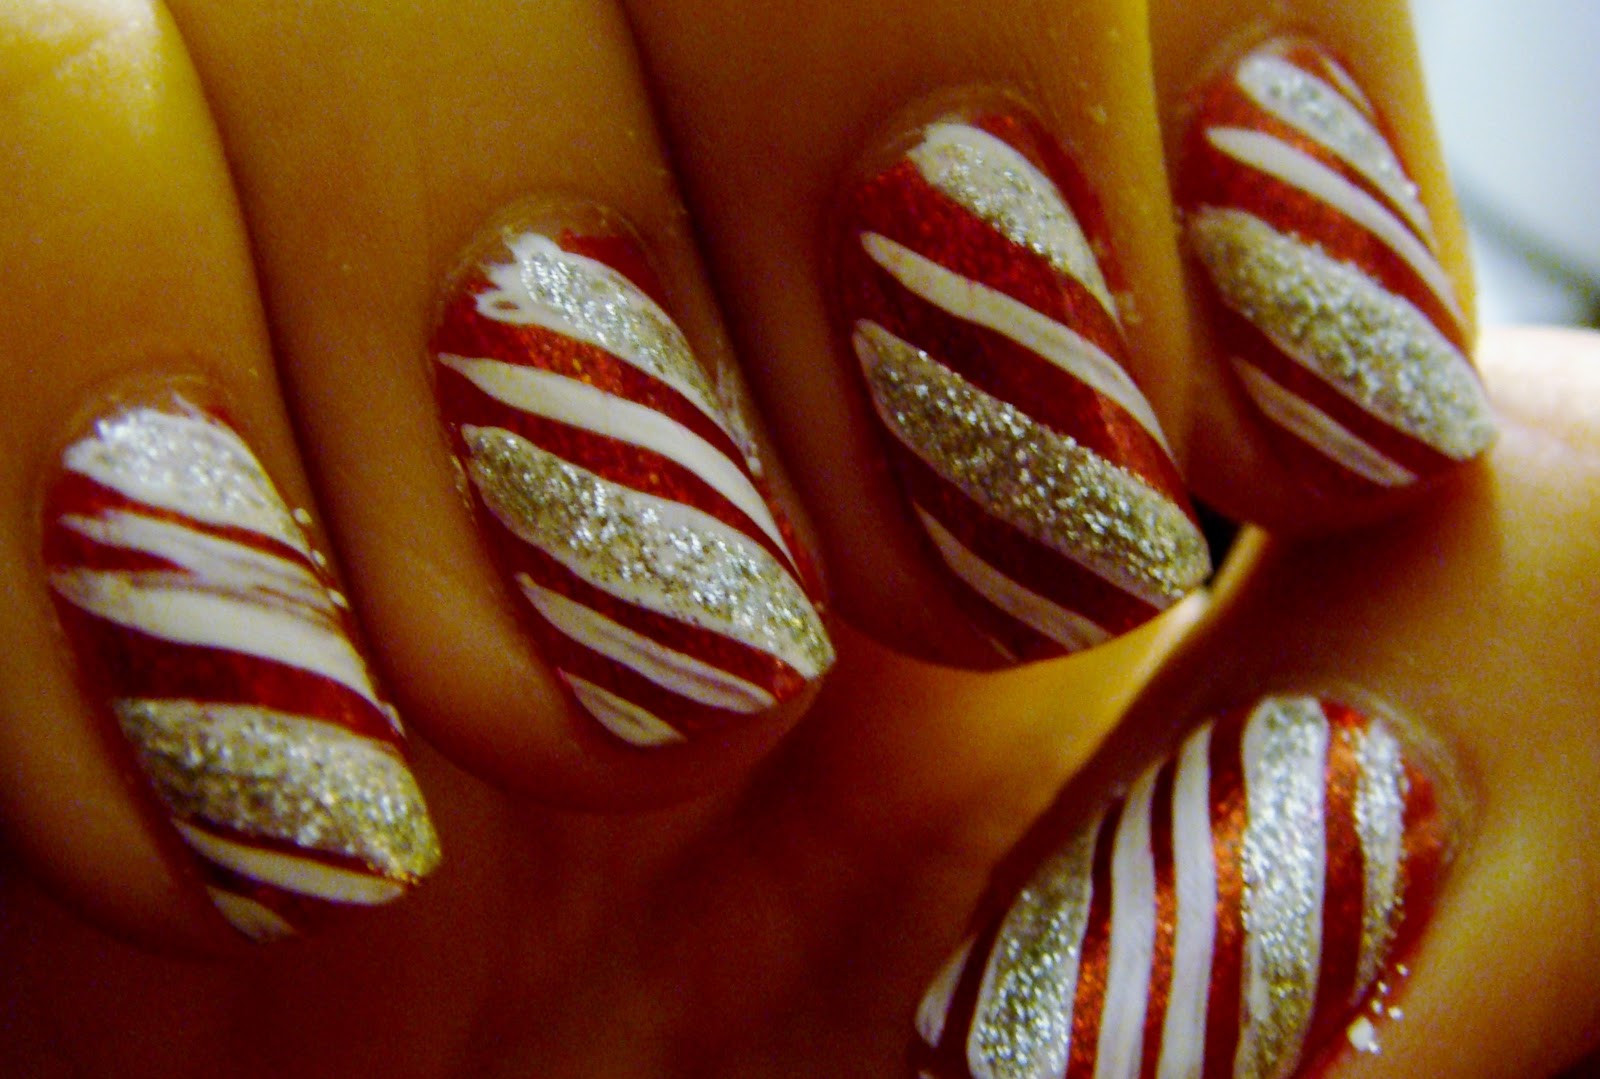 Christmas Nails Candy Cane  All Things Beauty Fashion and Hair Countdown to